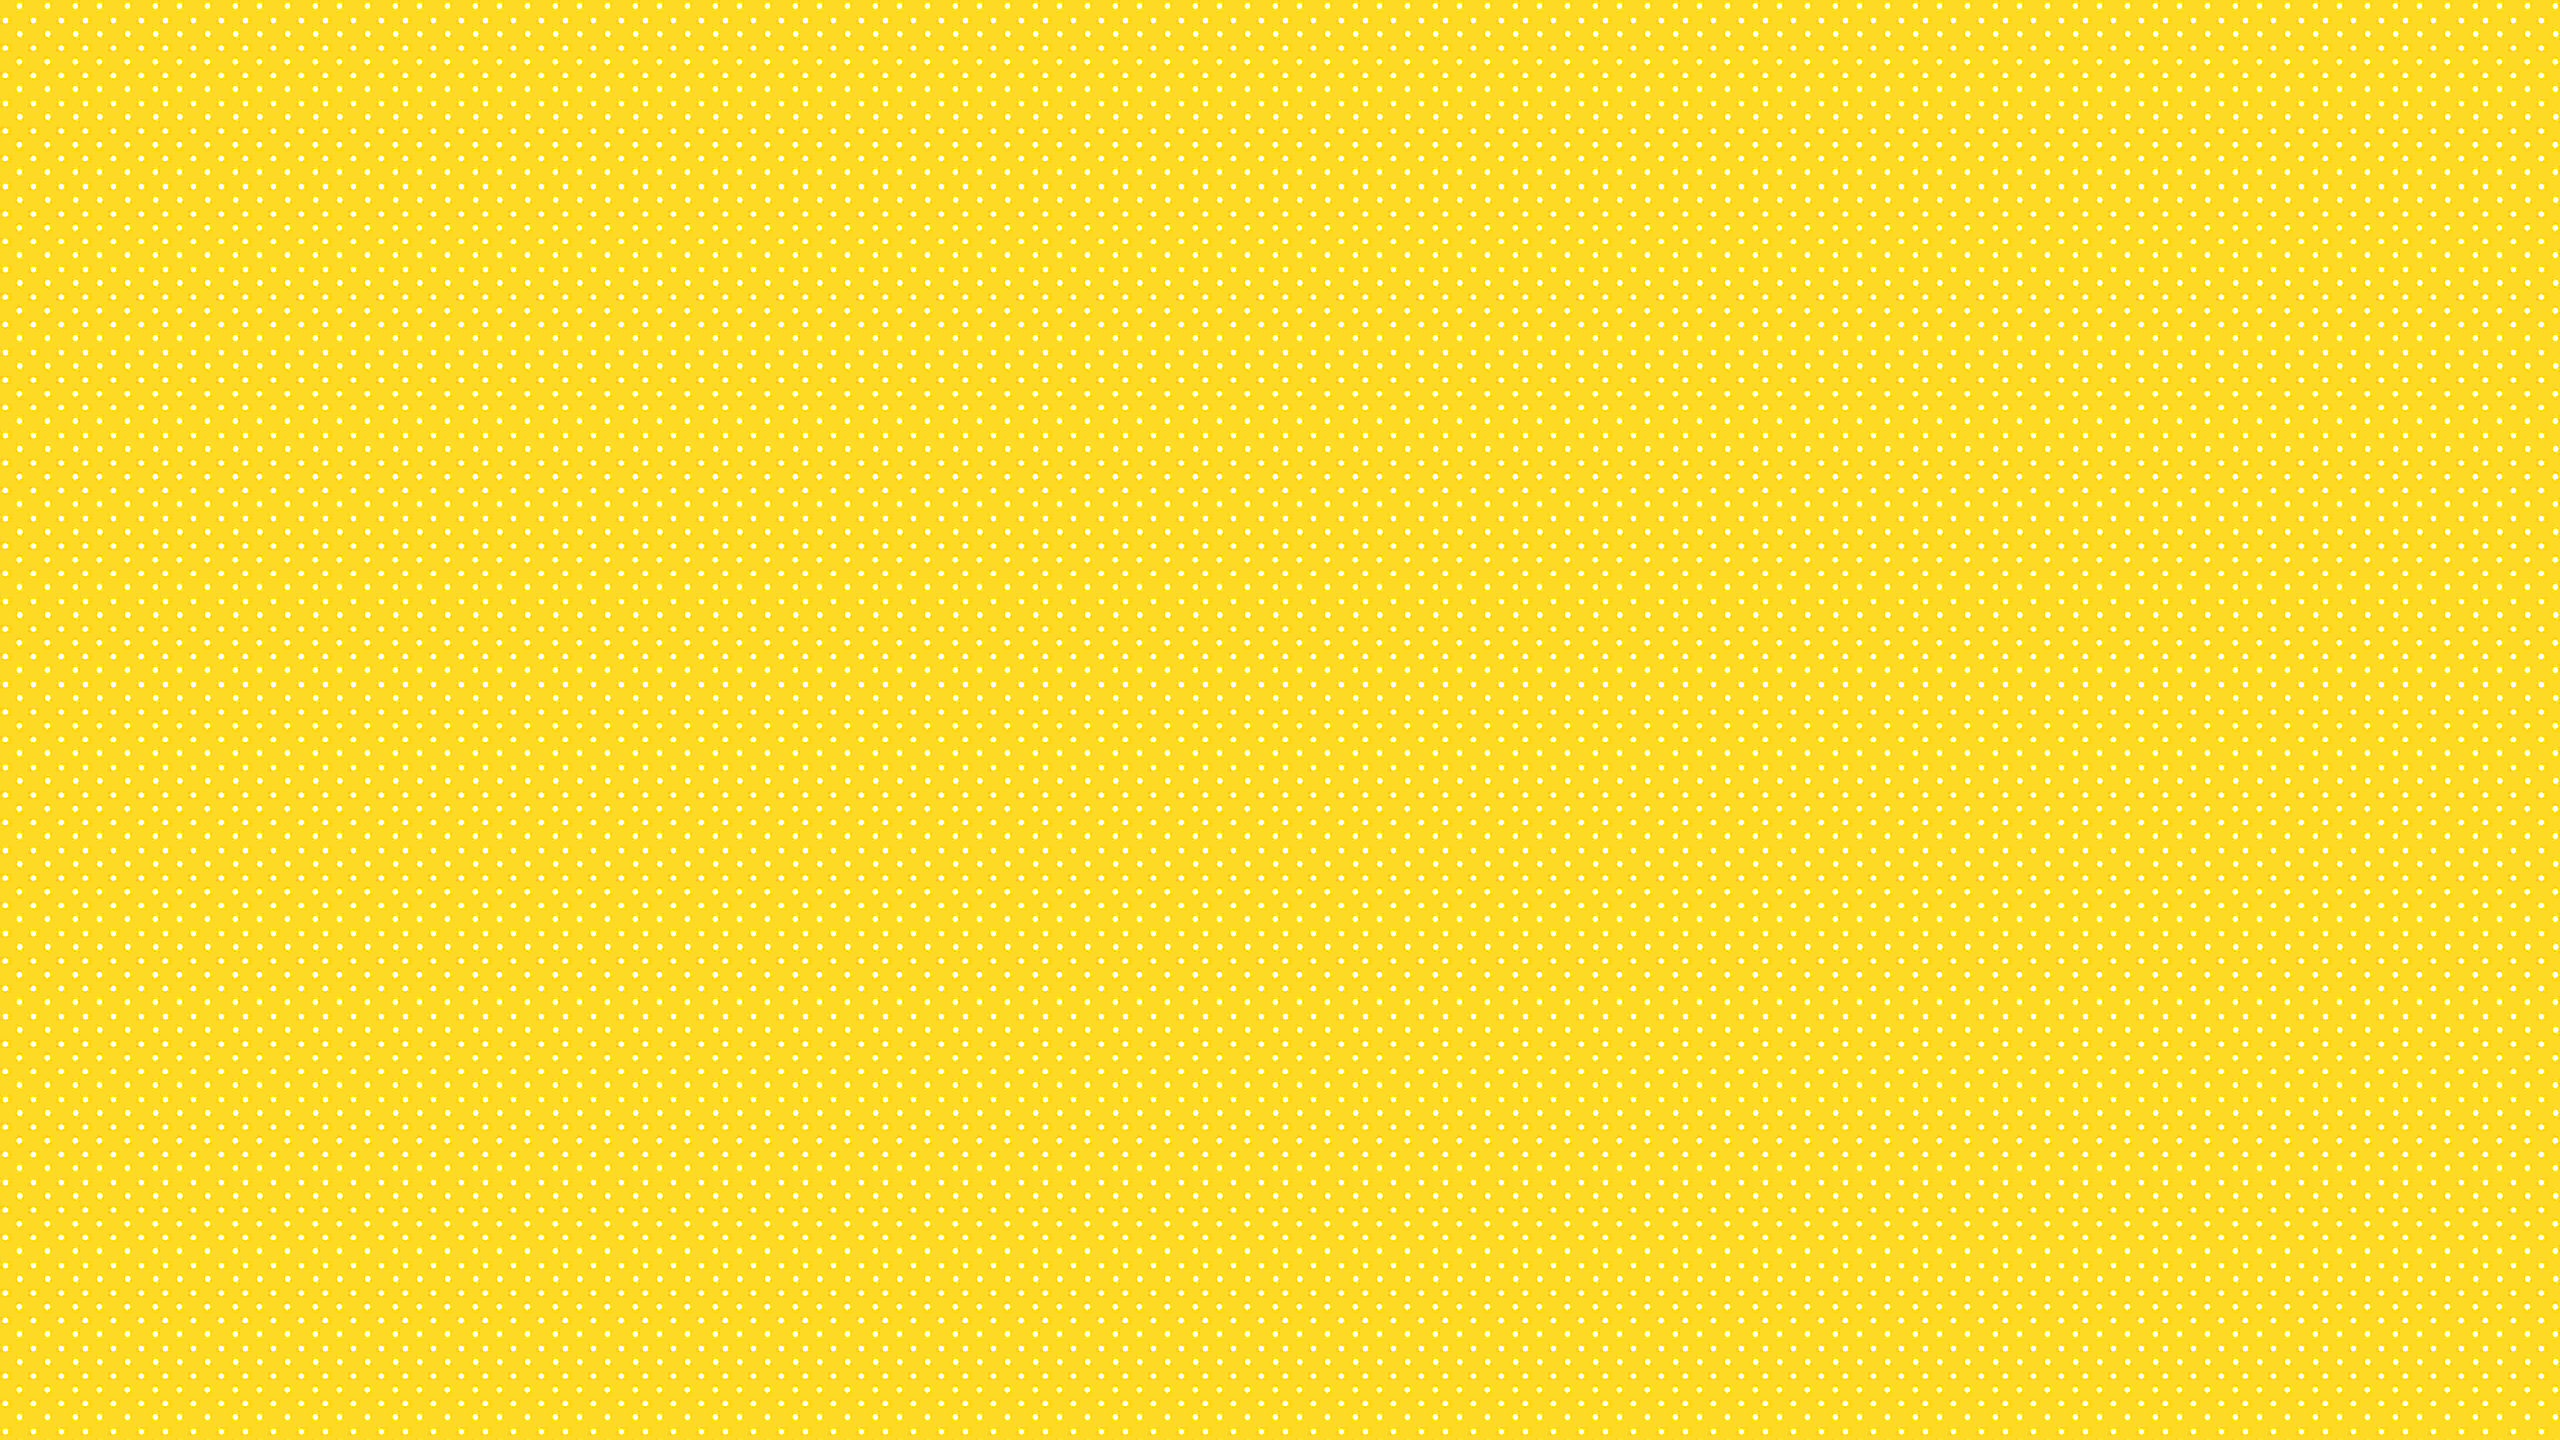 yellow polka dots desktop wallpaper is easy just save the wallpaper